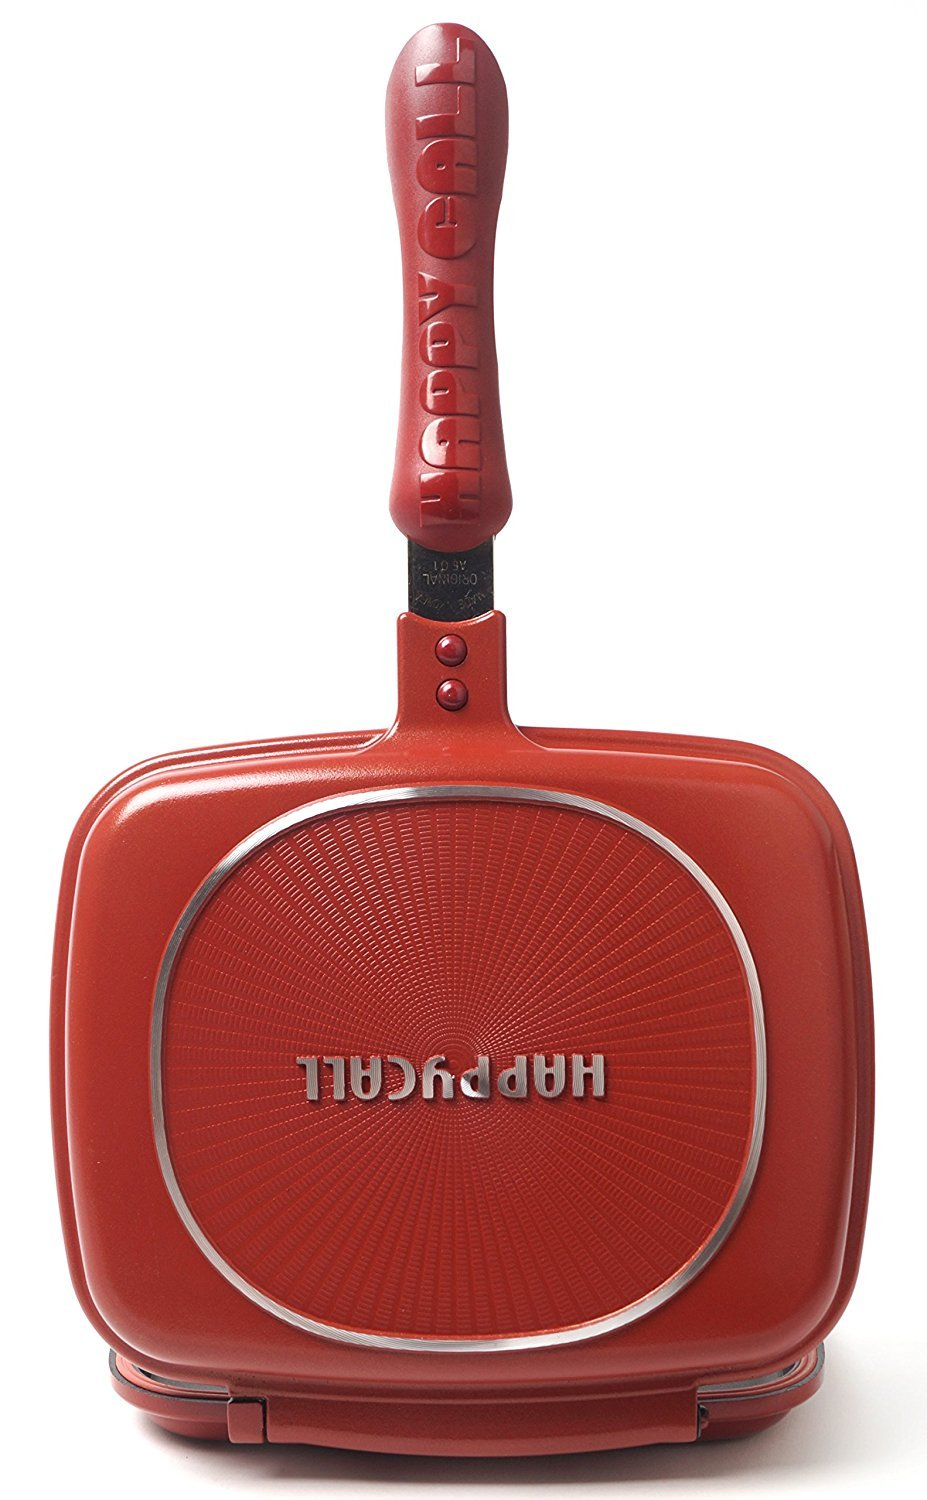 Happycall Double Sided Pressure Pan Red Cooking Cookware Frying pan new 210mm